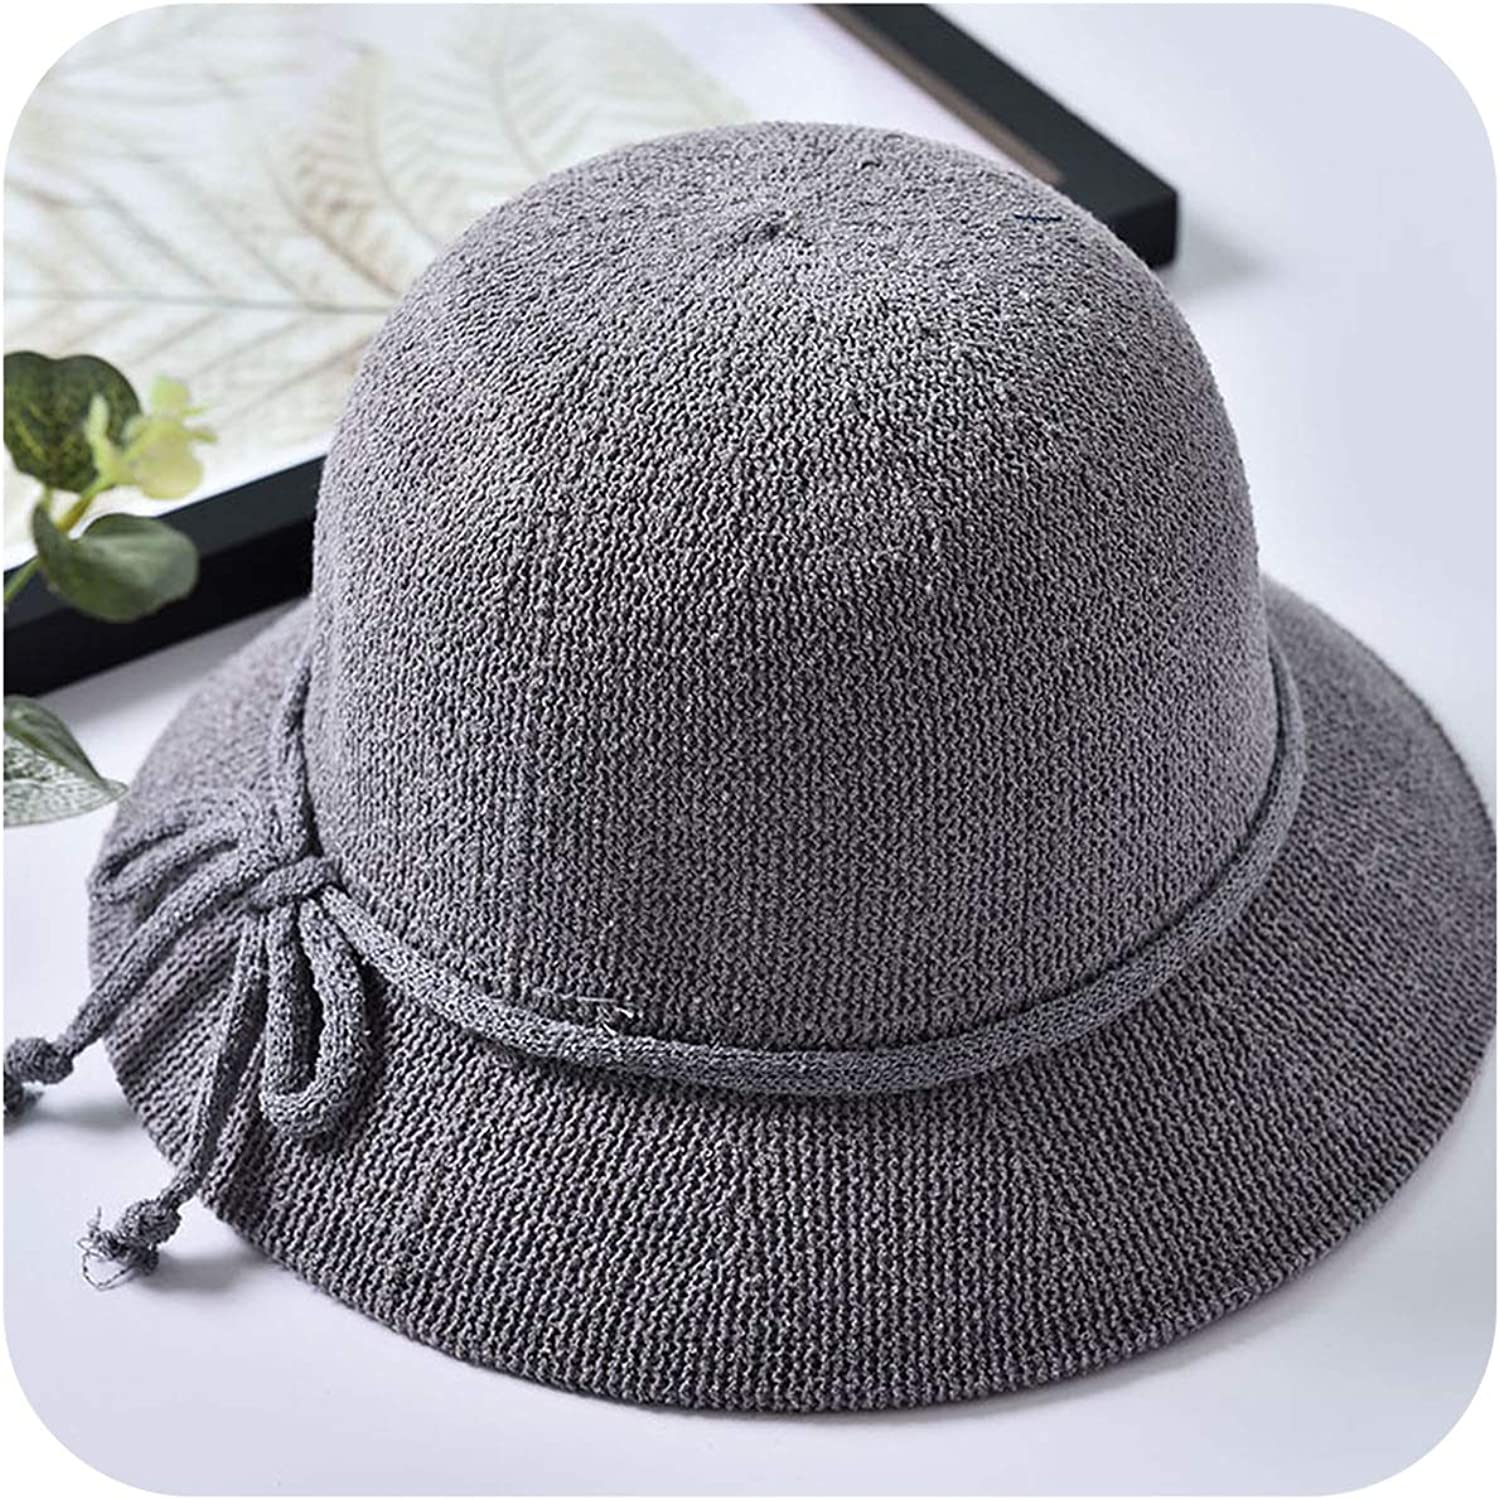 Biubiu infantandtoddlerhats Summer Lady Fisherman Hat Casual Solid color Breathable Sun Hat